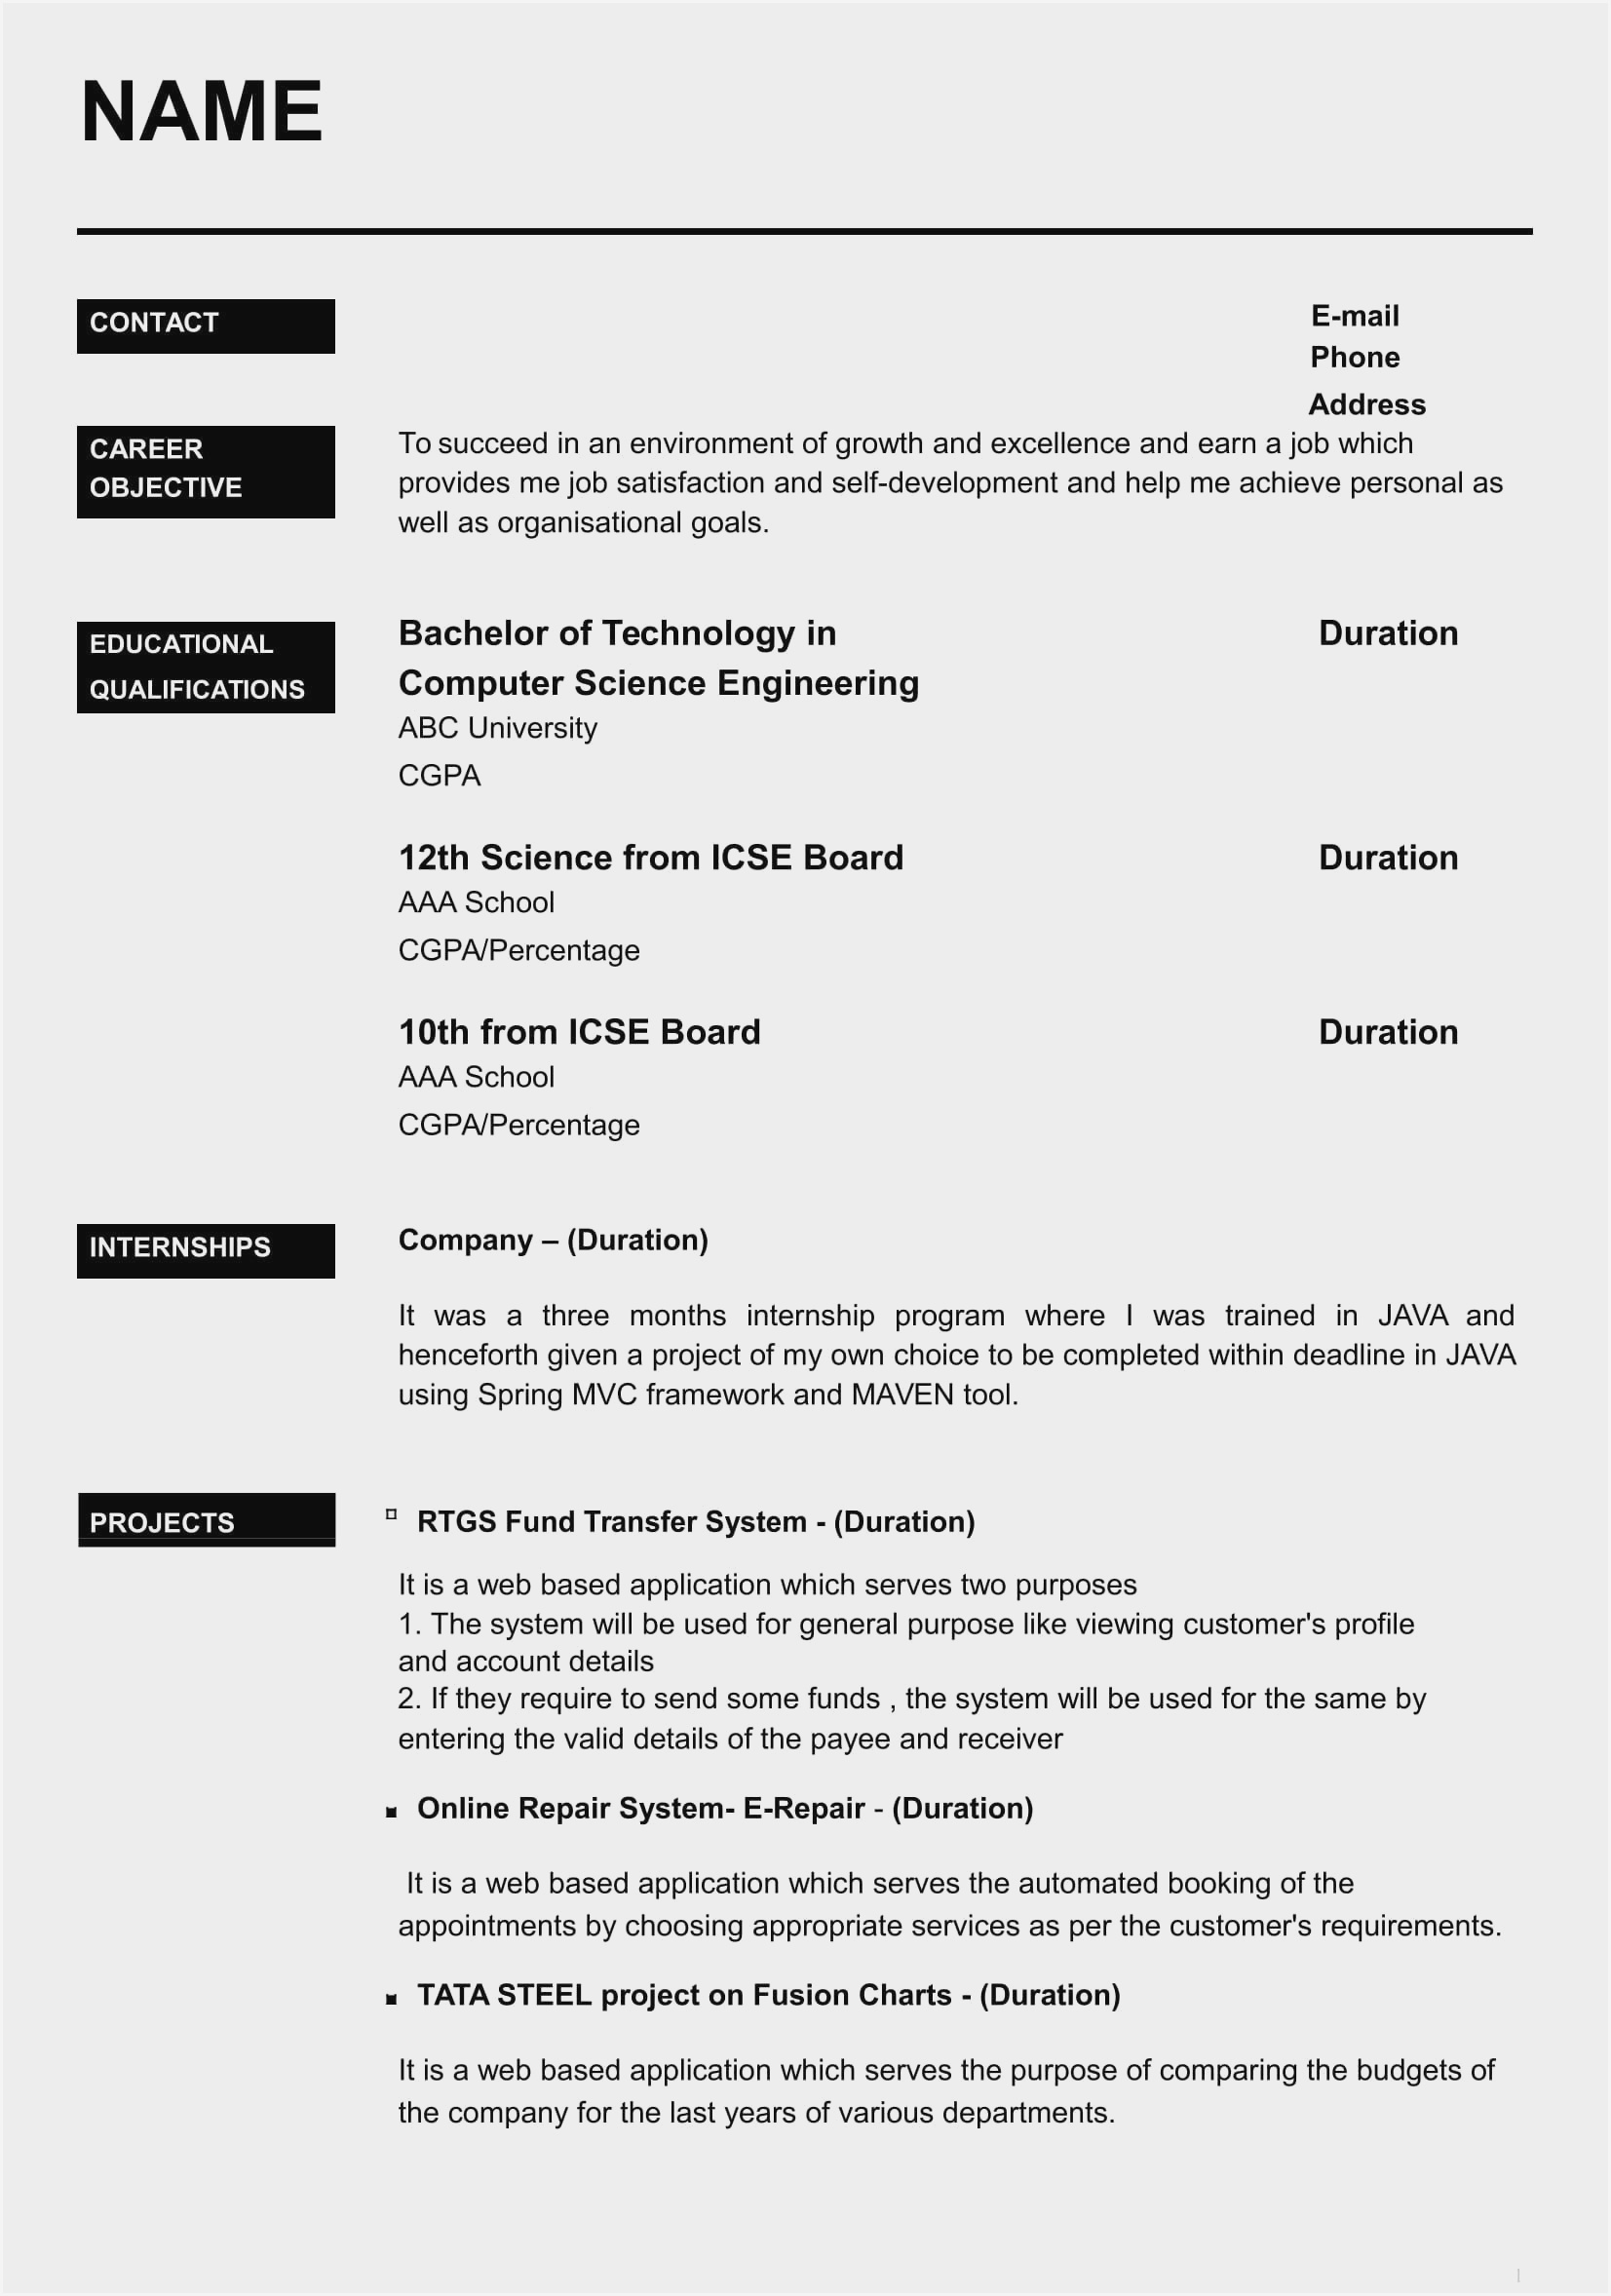 resume format free sample indian examples pdf for freshers parts department office Resume Indian Resume Format Examples